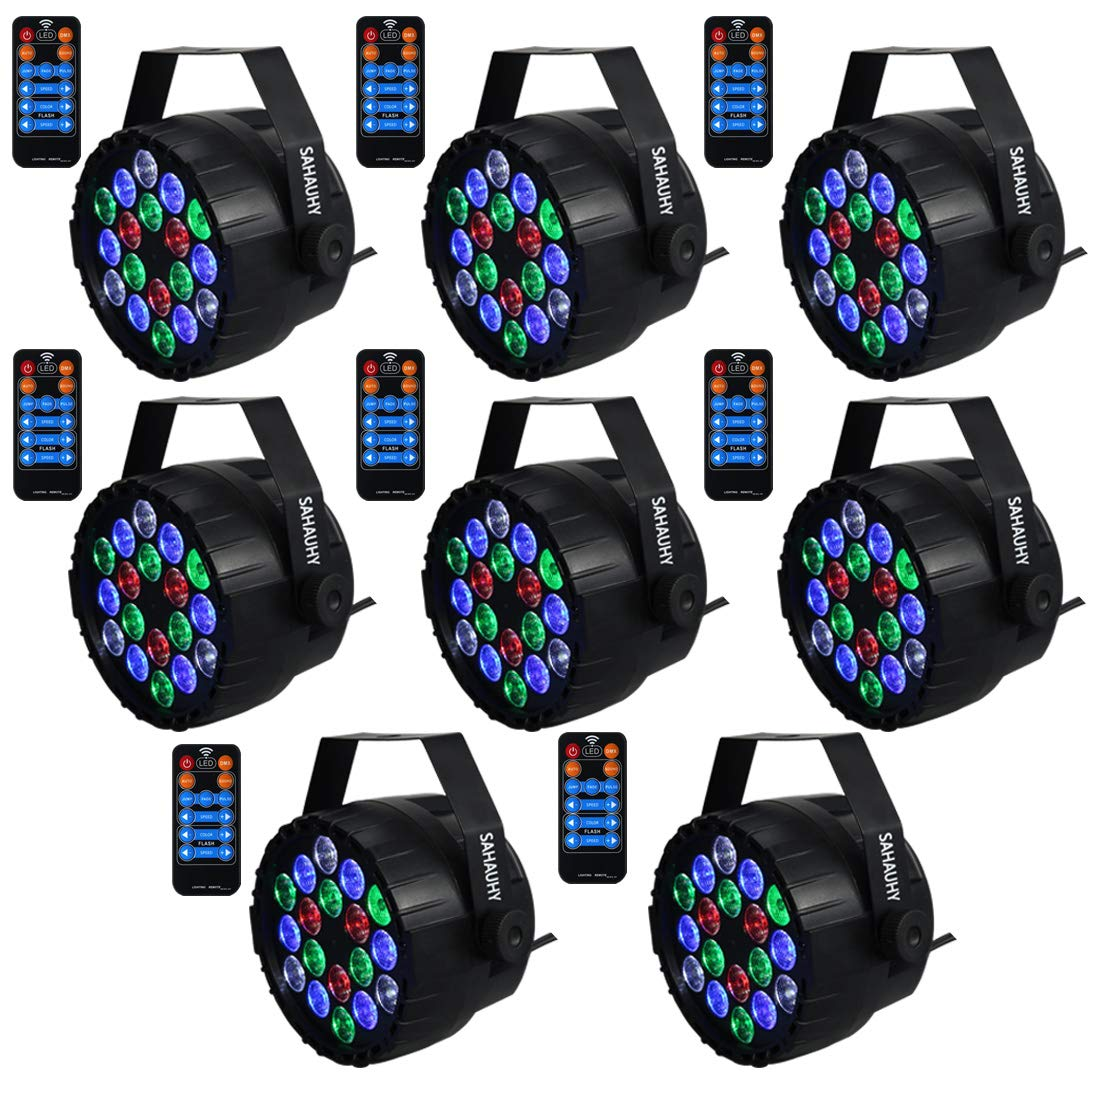 Stage Lights,SAHAUHY RGBW 18 Led Uplights Par Lights Sound Activated Or DMX Control Dj Lights Up Lighting with Remote for Wedding Party